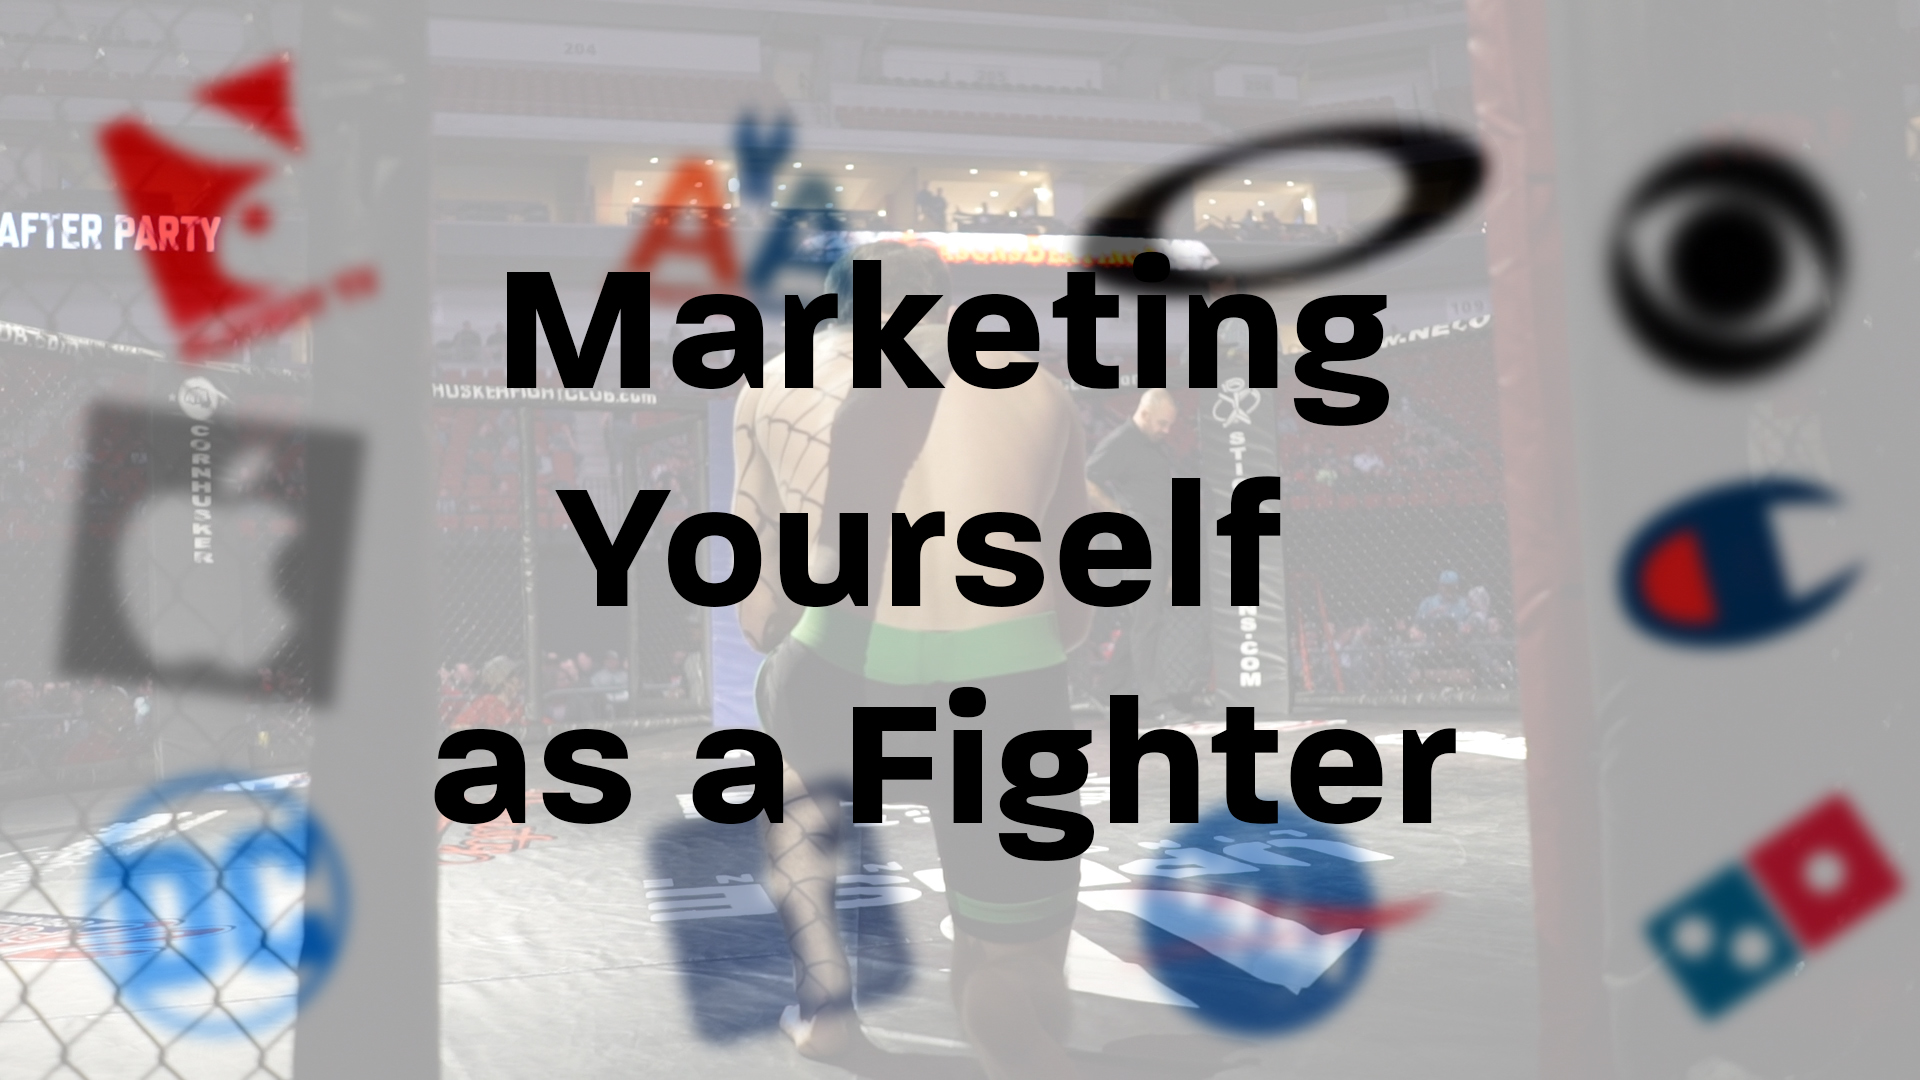 Marketing as a Fighter